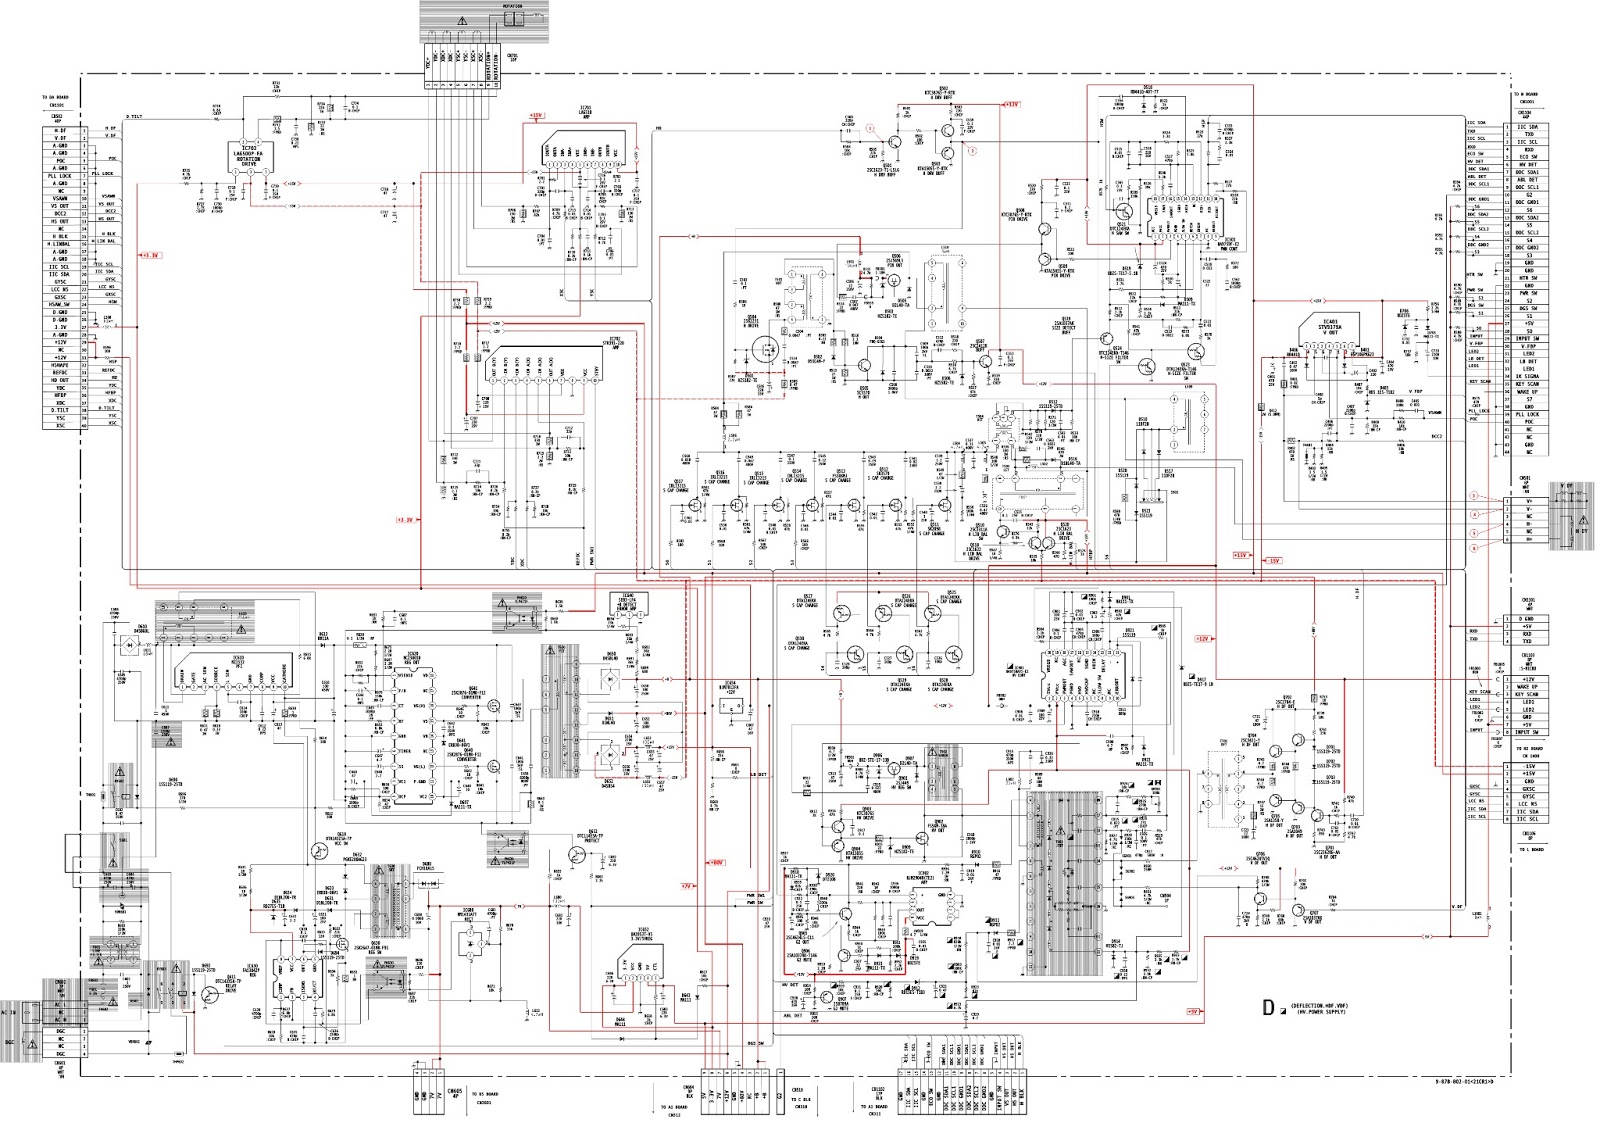 Playstation 4 motherboard schematic